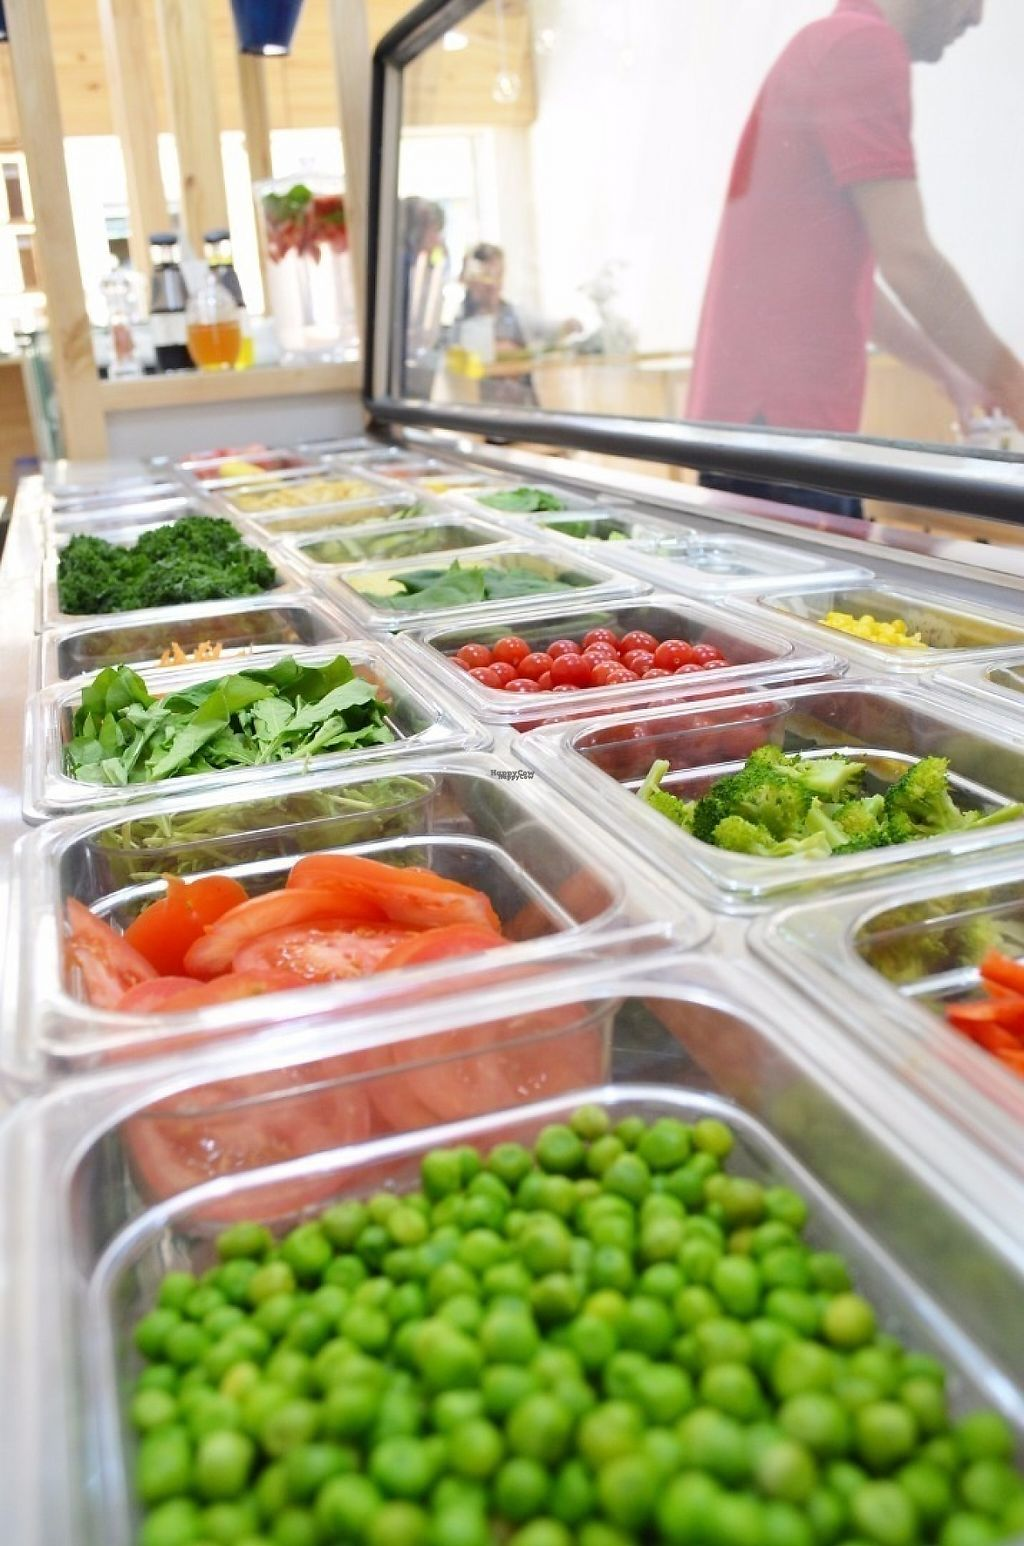 """Photo of El Tokte  by <a href=""""/members/profile/livegreensuperfoods"""">livegreensuperfoods</a> <br/>salad bar (opens for lunch) <br/> April 23, 2017  - <a href='/contact/abuse/image/37609/251331'>Report</a>"""